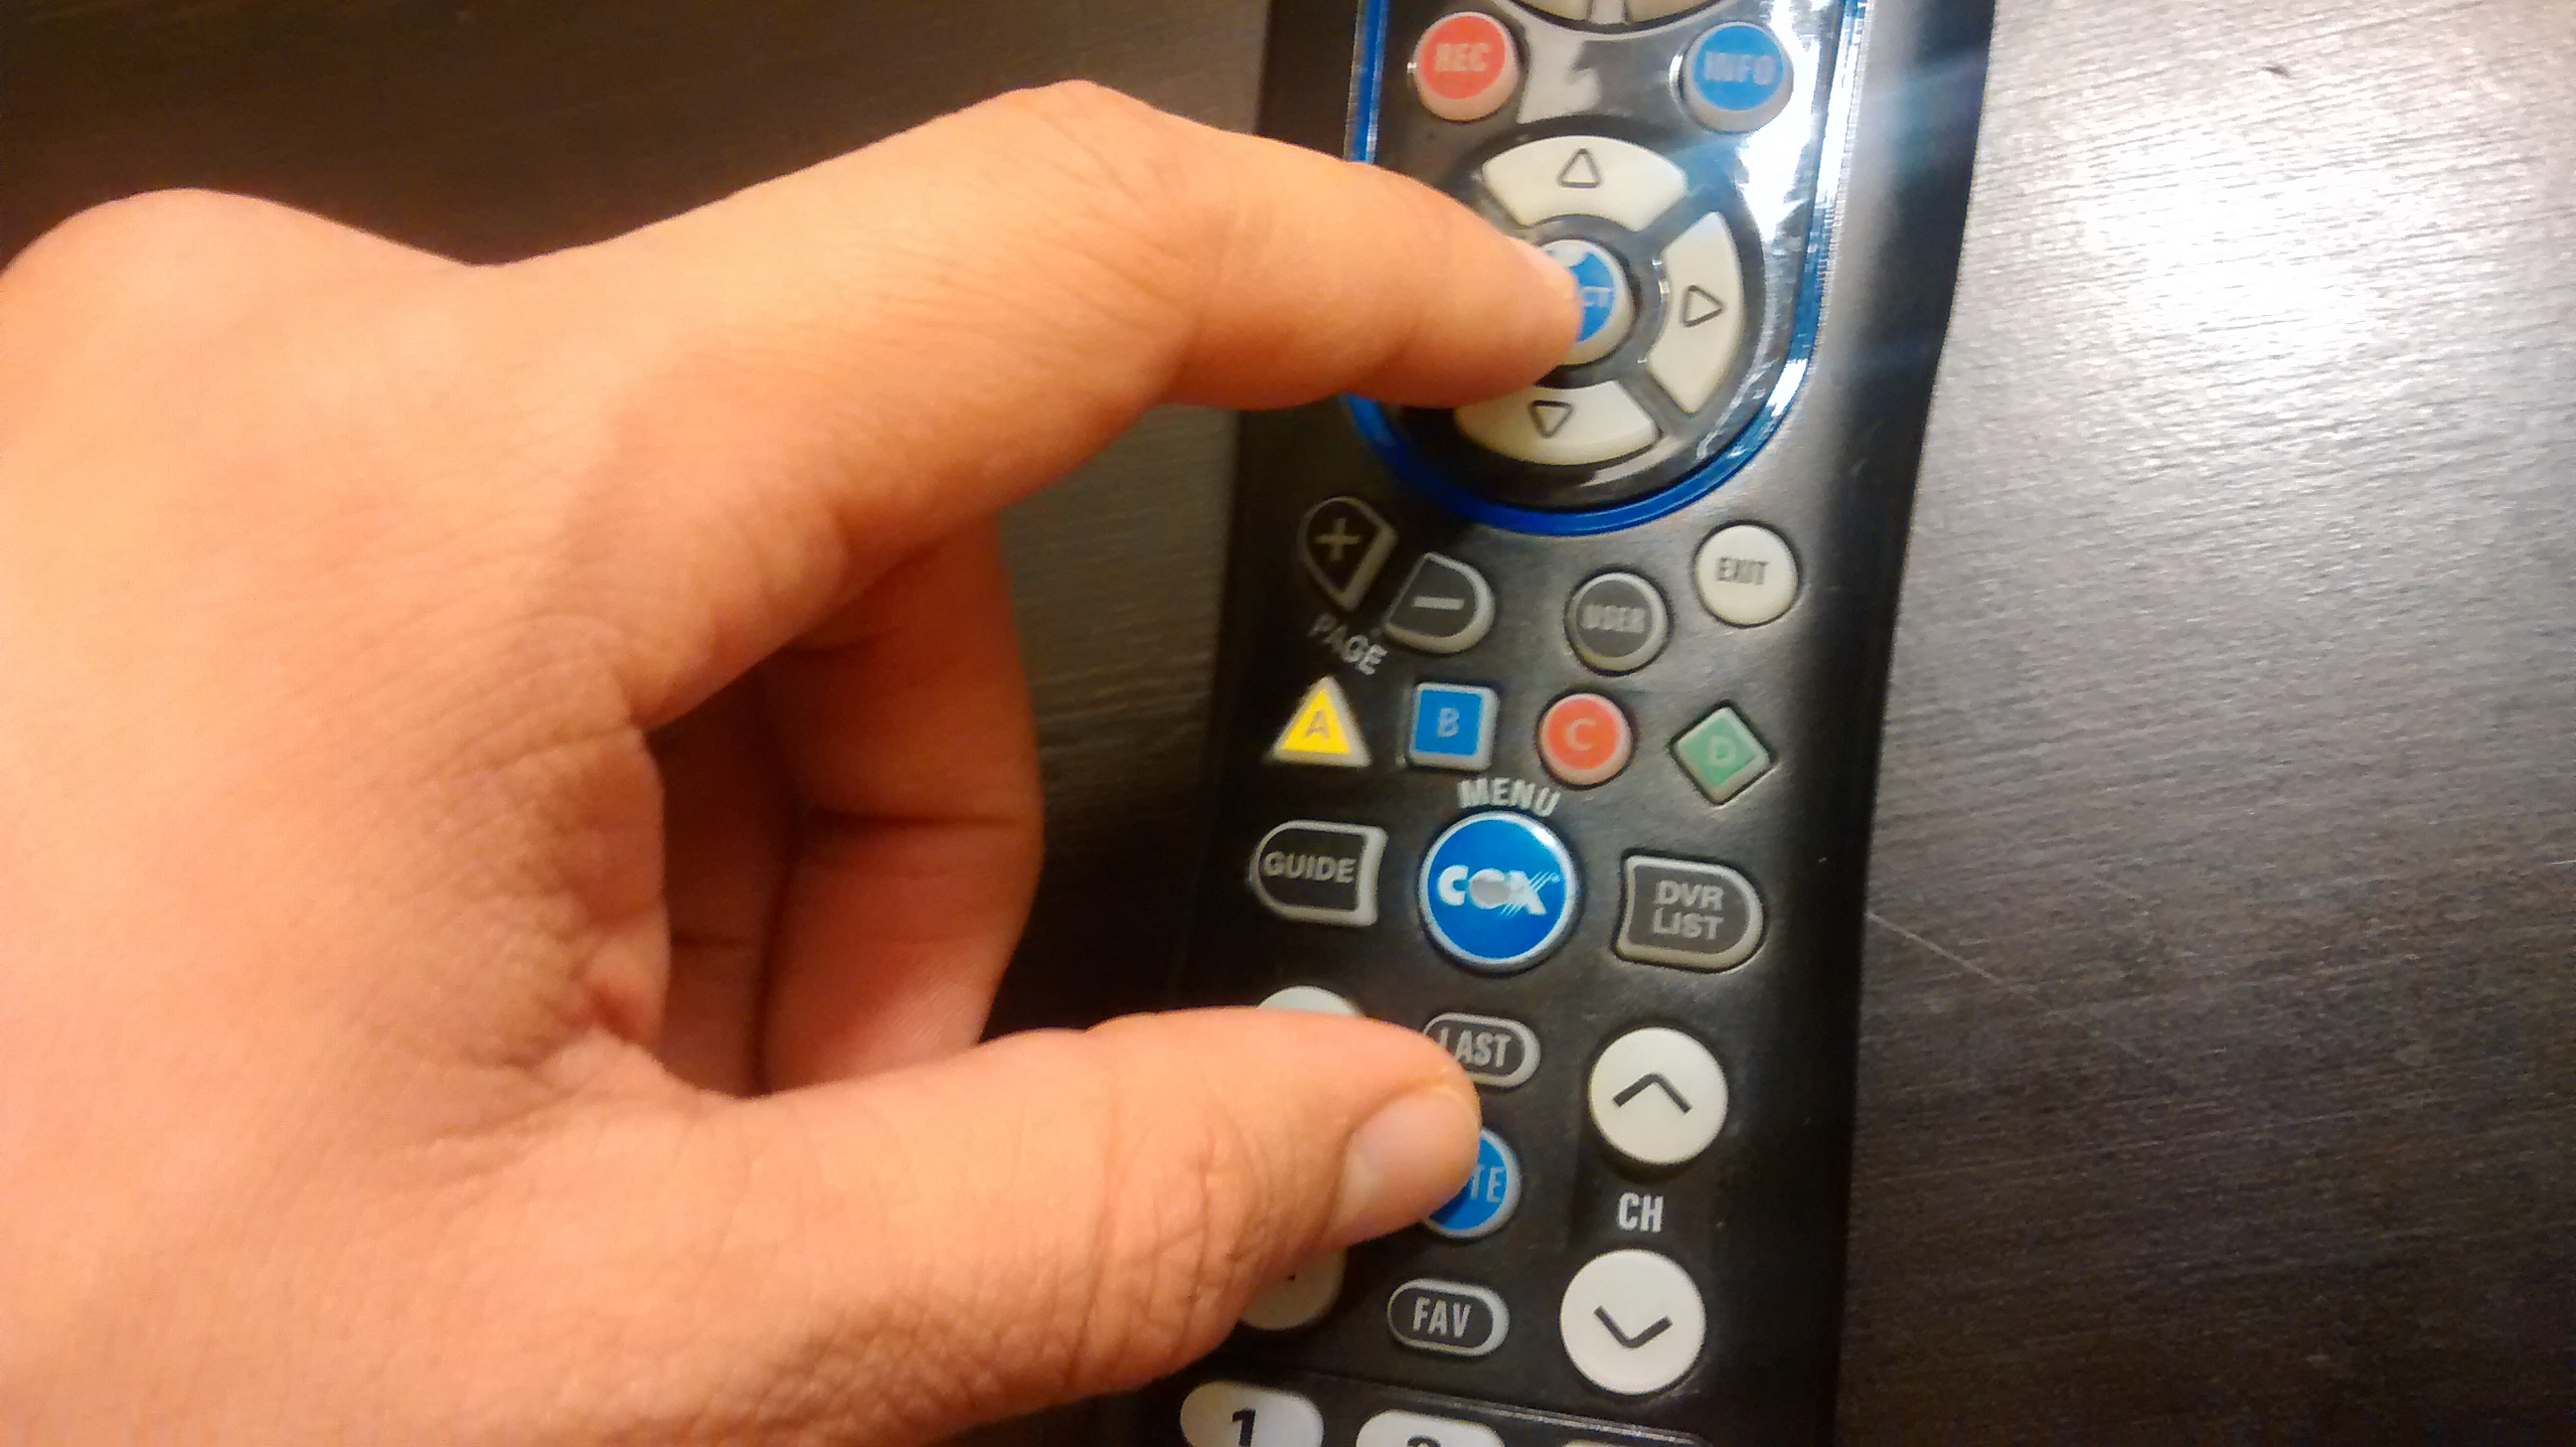 How to program your Cox Remote to your TV (URC 8820) - Botcrawl